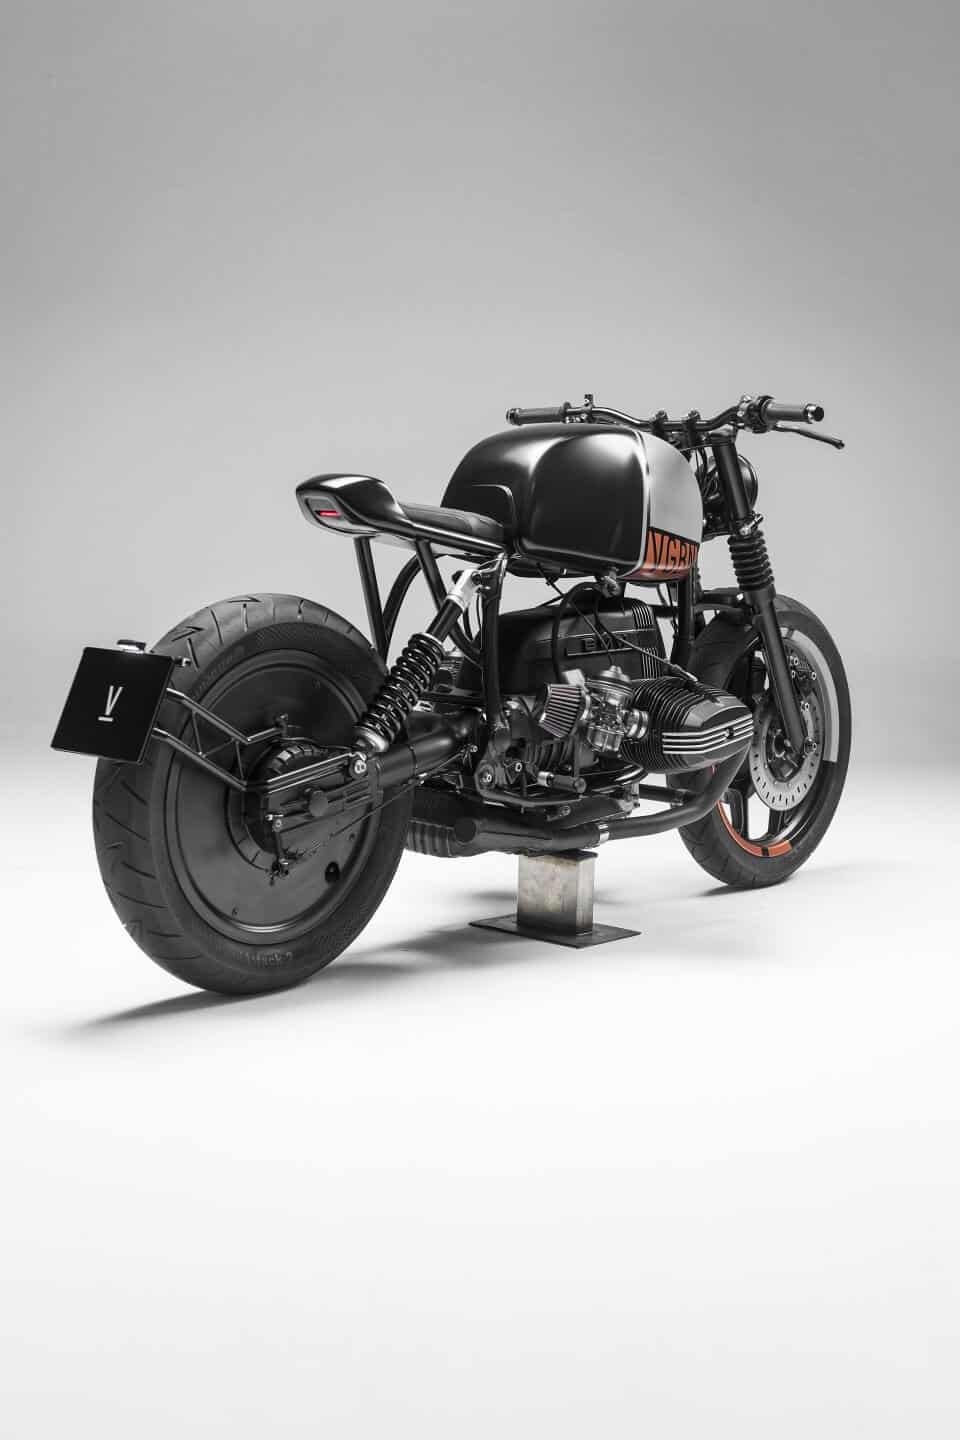 Vagabund custom BMW R80RT Motorcycle